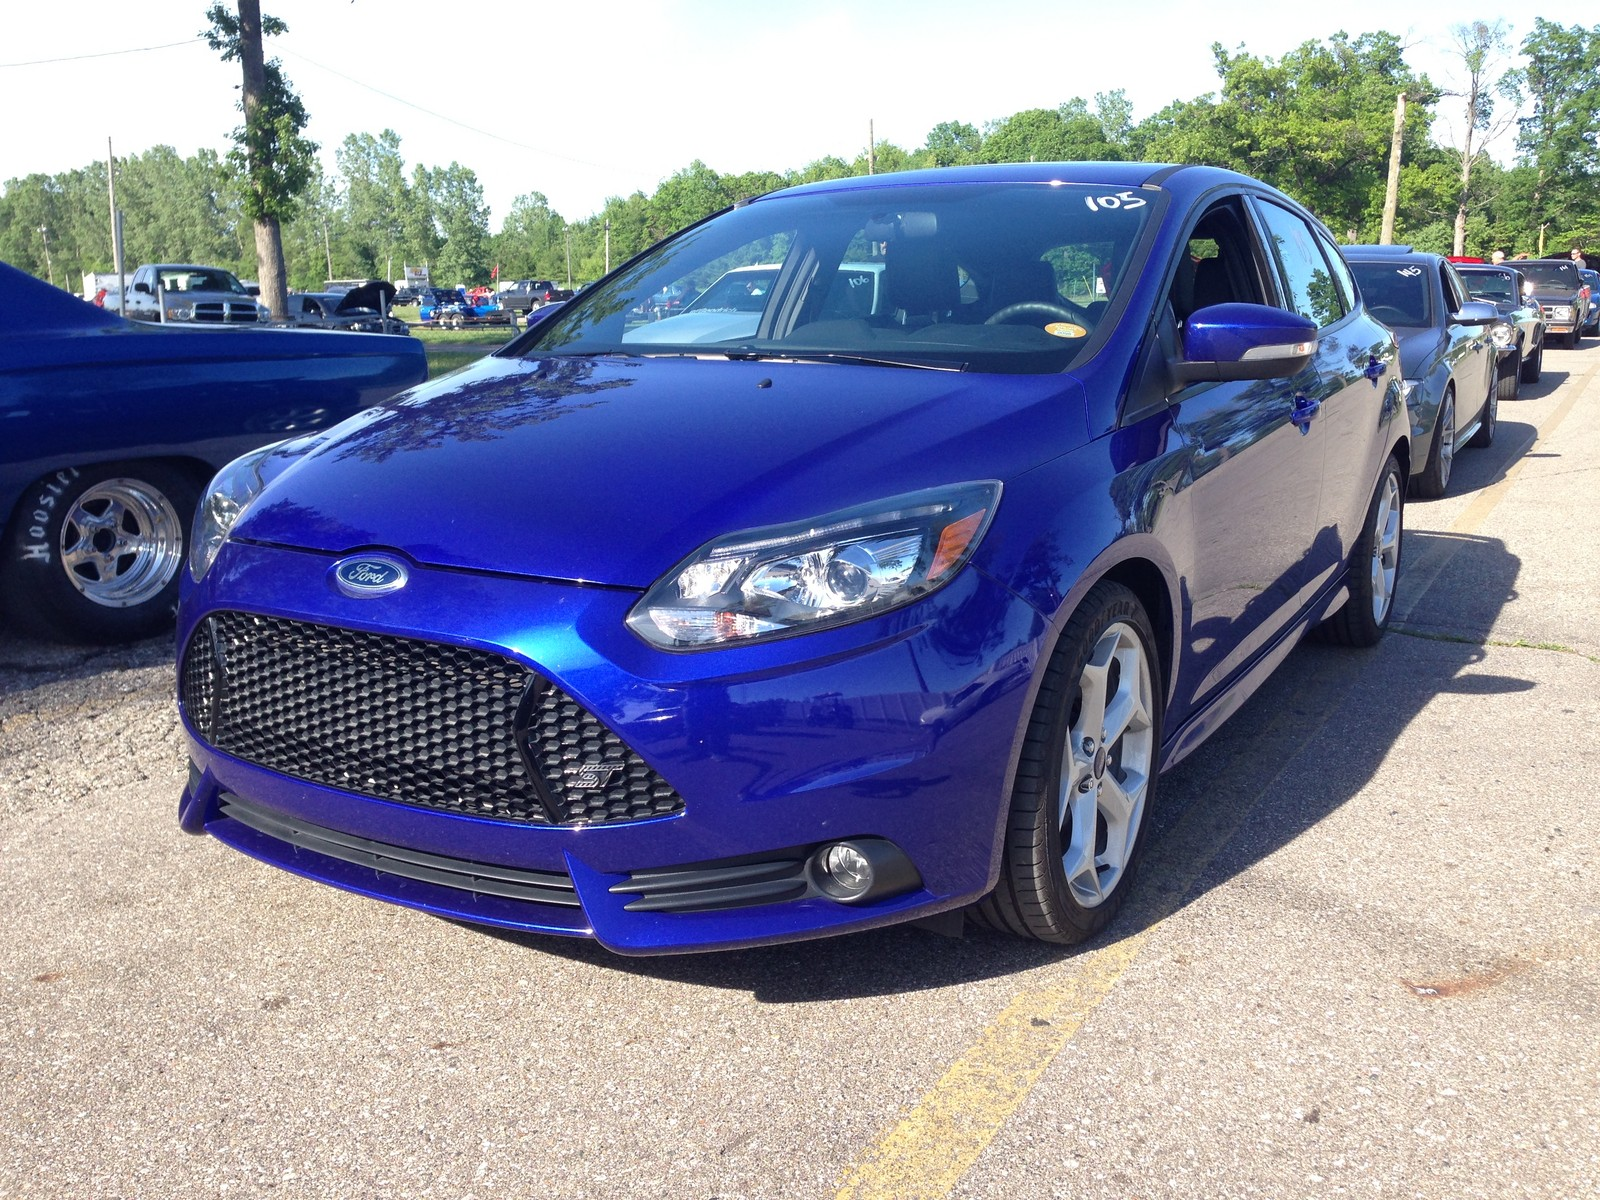 Stock 2014 Ford Focus ST 1 4 mile trap speeds 0 60